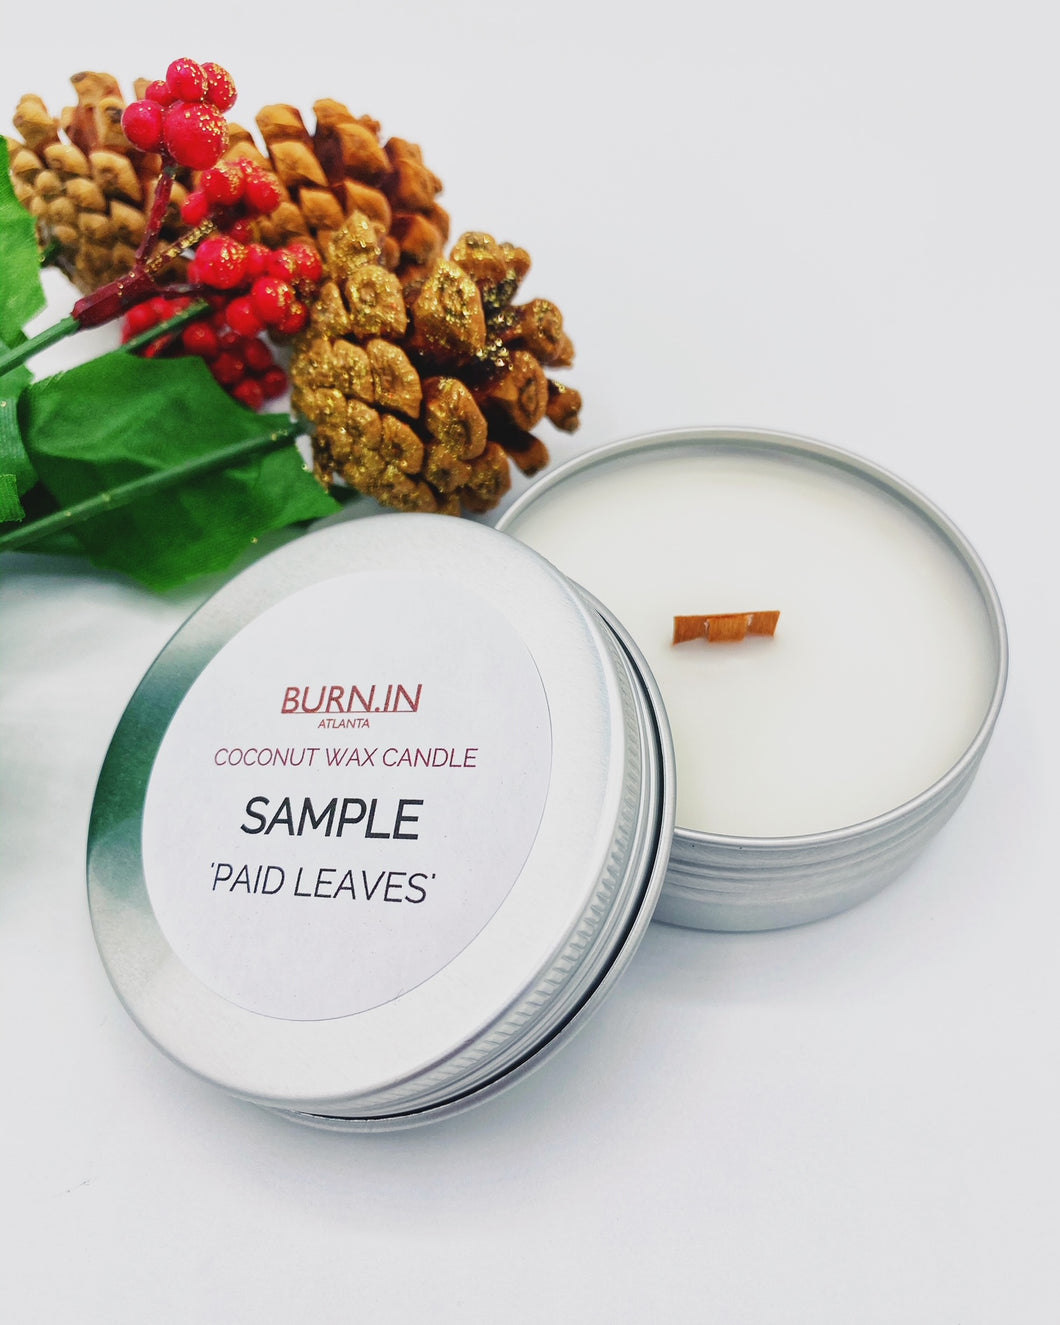 'Paid Leaves' Sample Tin